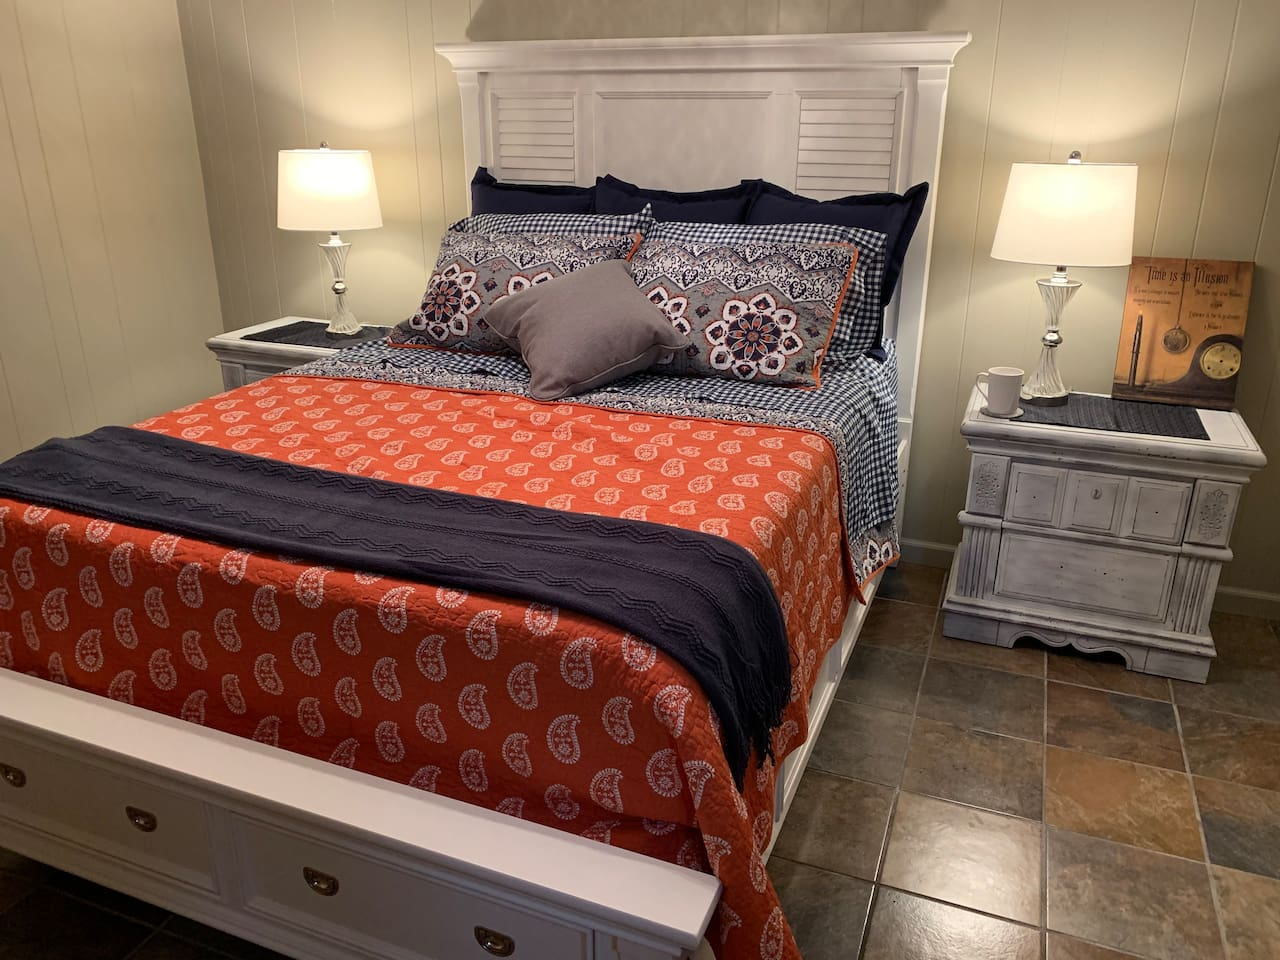 Comfortable private bedroom. Notice the sparkling clean glowing floors. Bedding is hand selected for softness and restful sleep. We want your stay to be relaxing and memorable.